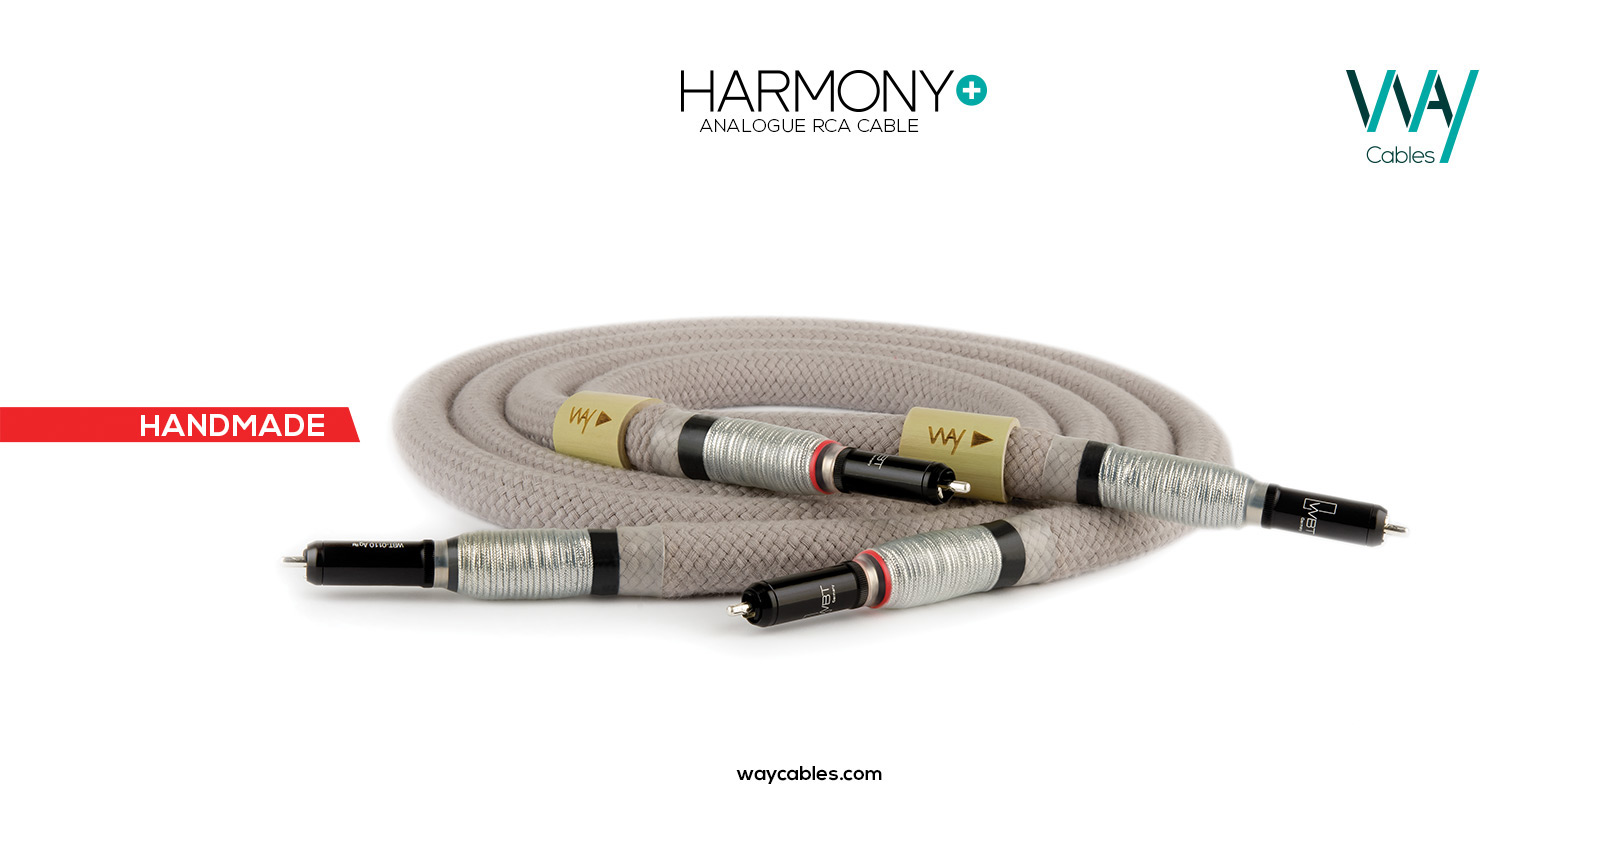 WayCables_Inter_Harmony 2